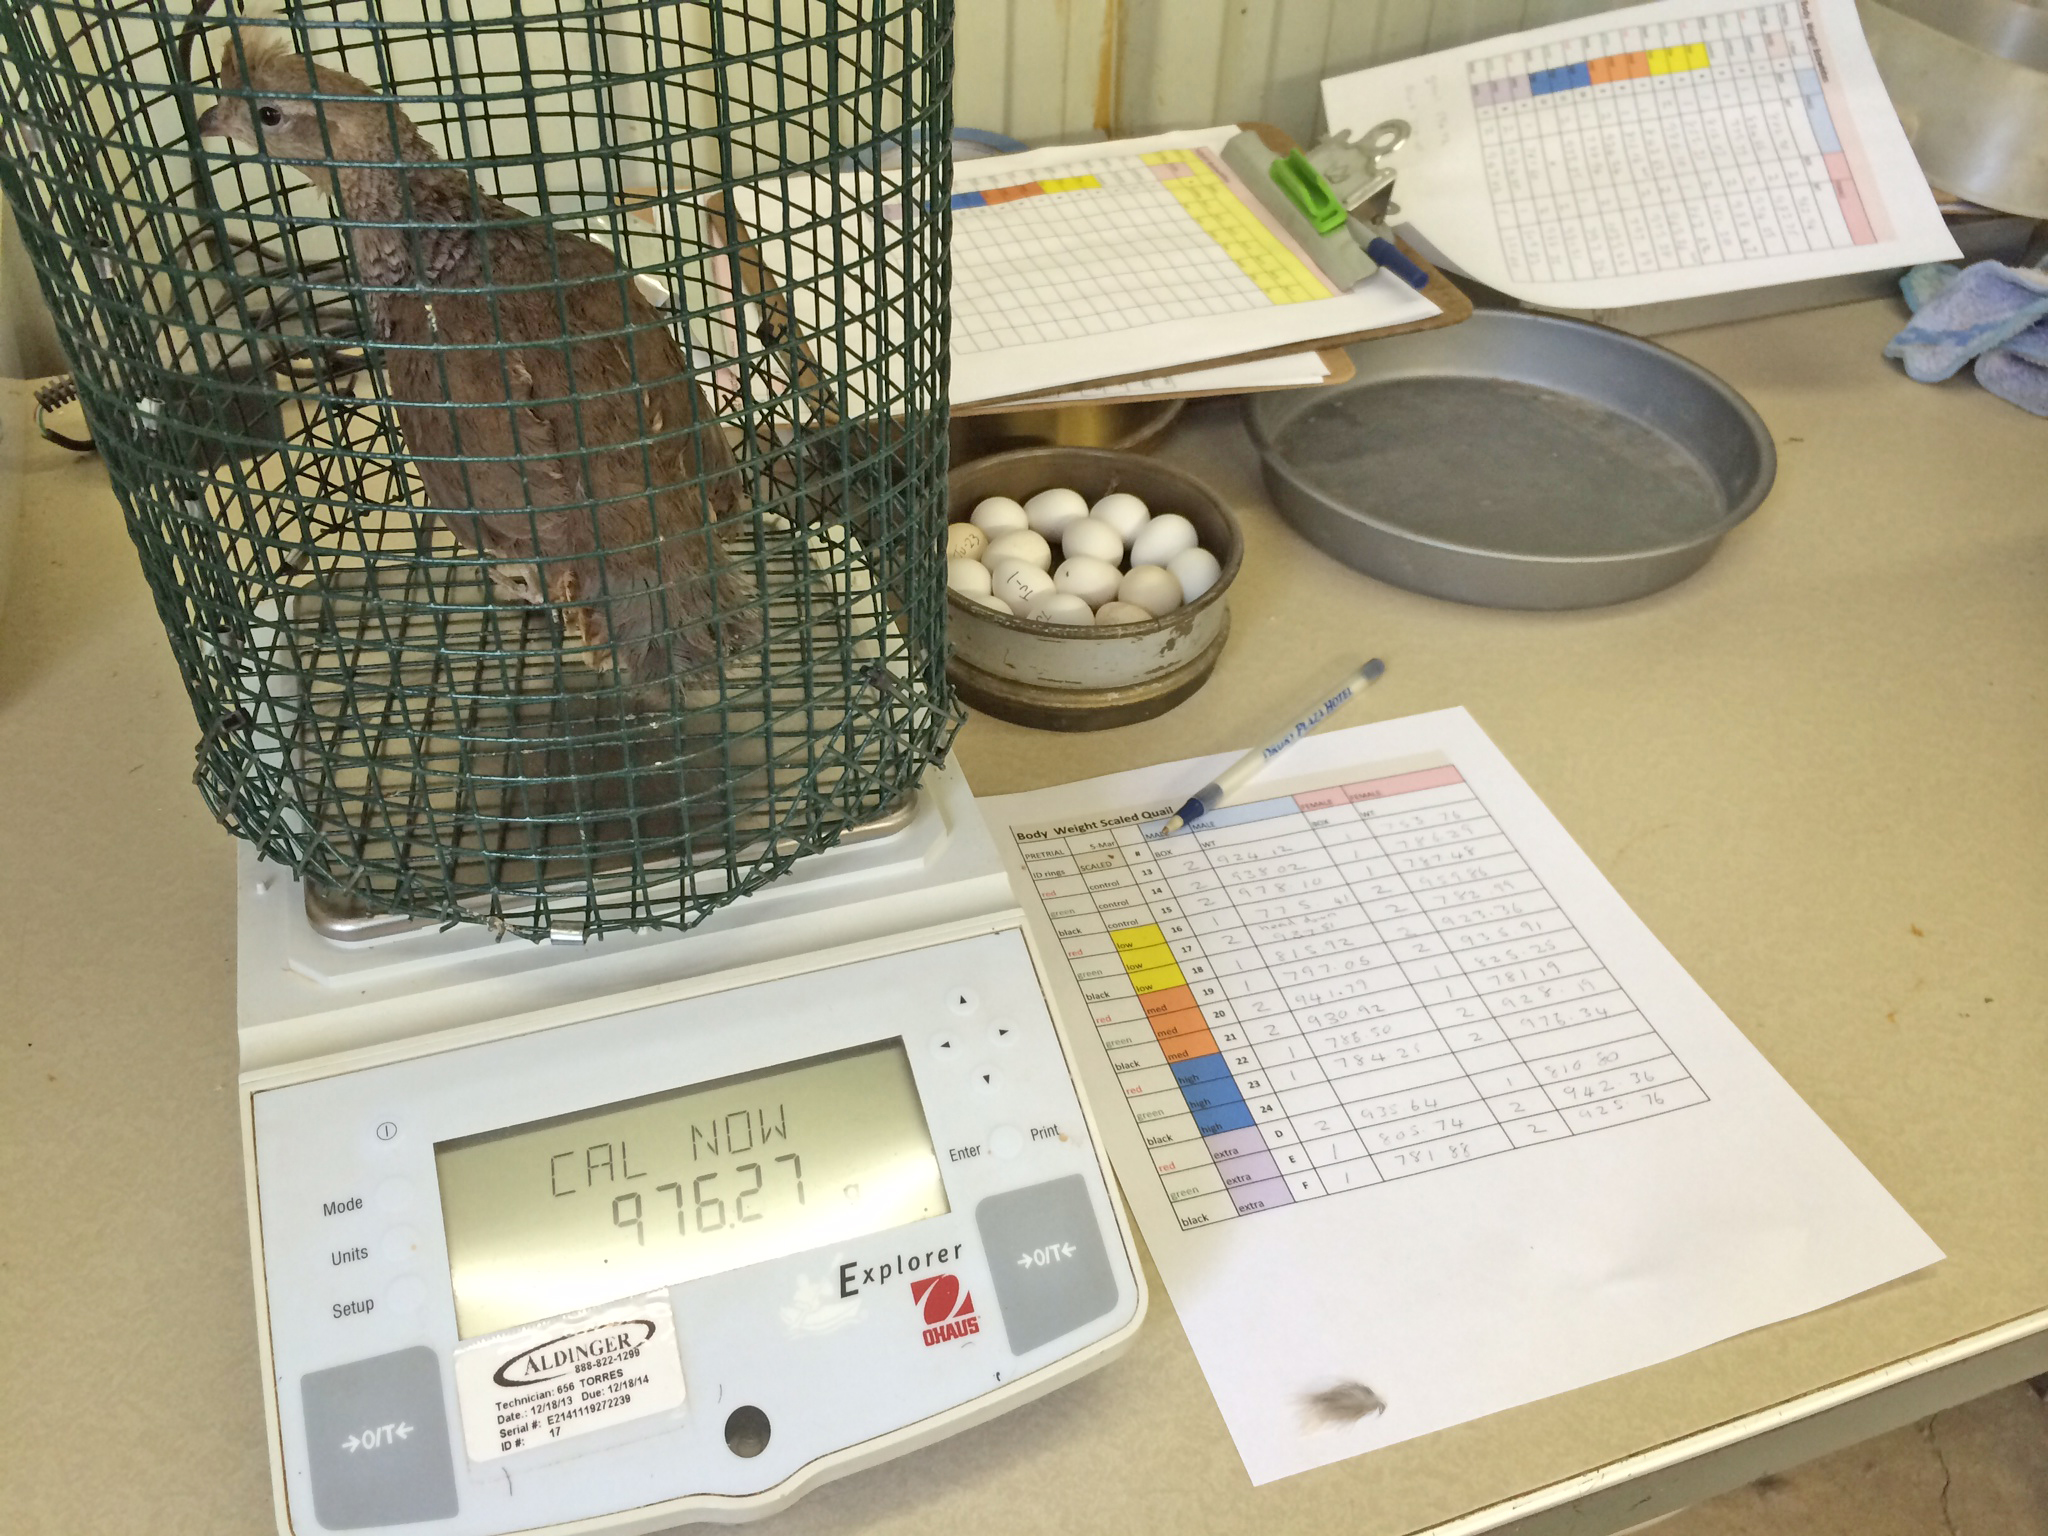 Quail were weighed monthly to see if there was any weight change due to the consumption of grain-based feed with low-level amounts of aflatoxion. (Texas A&M AgriLife Research photo)